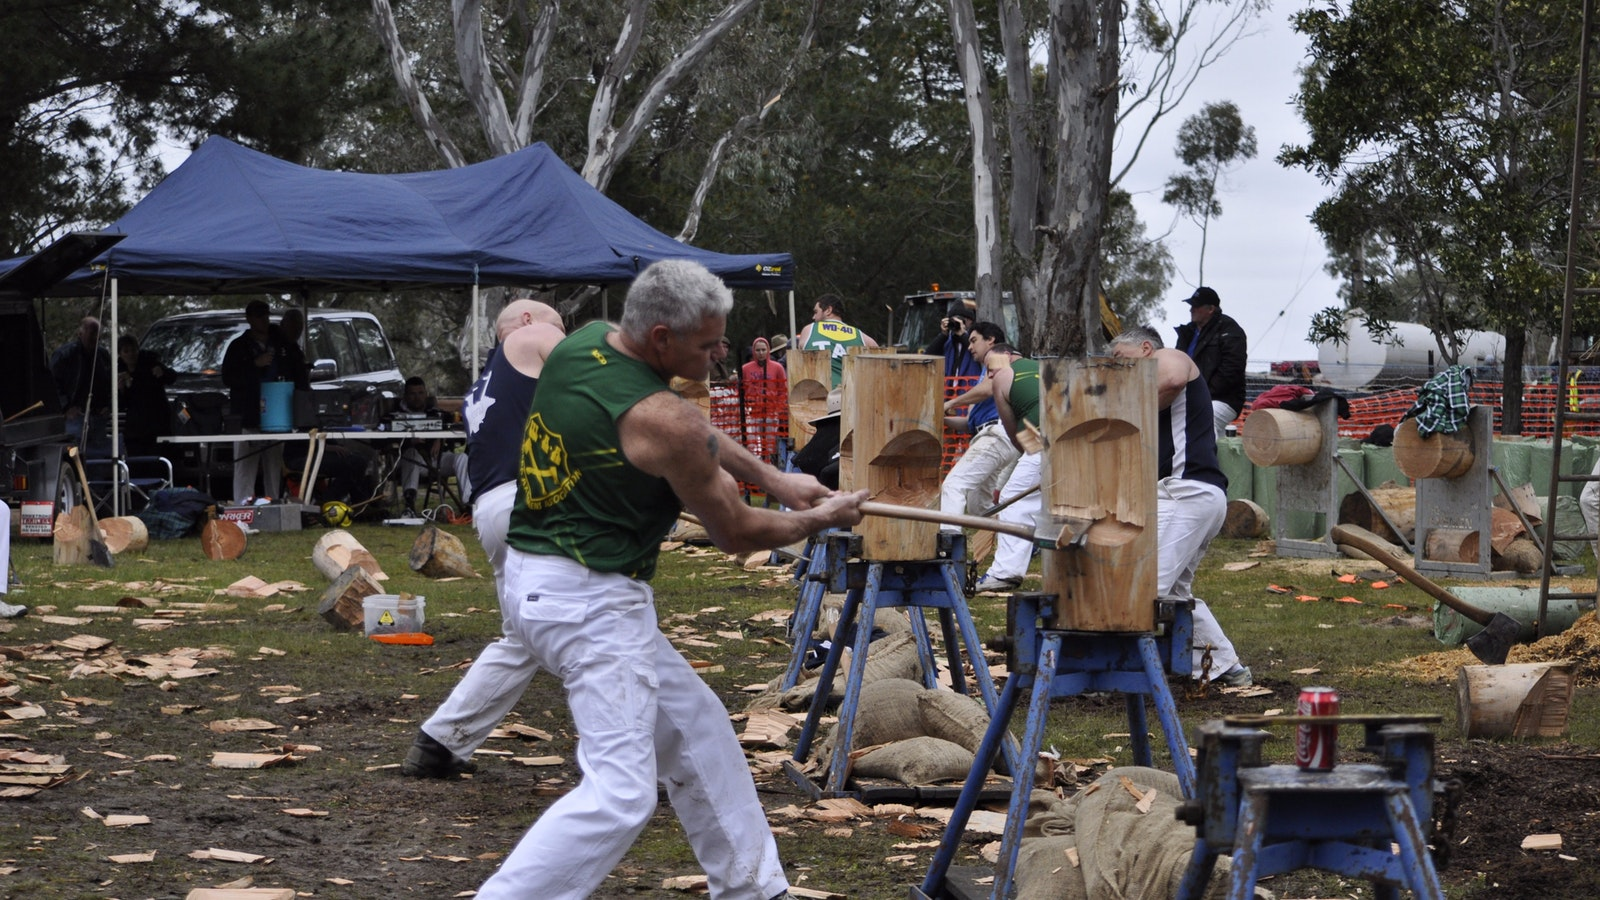 Action at the Metcalfe Woodchop